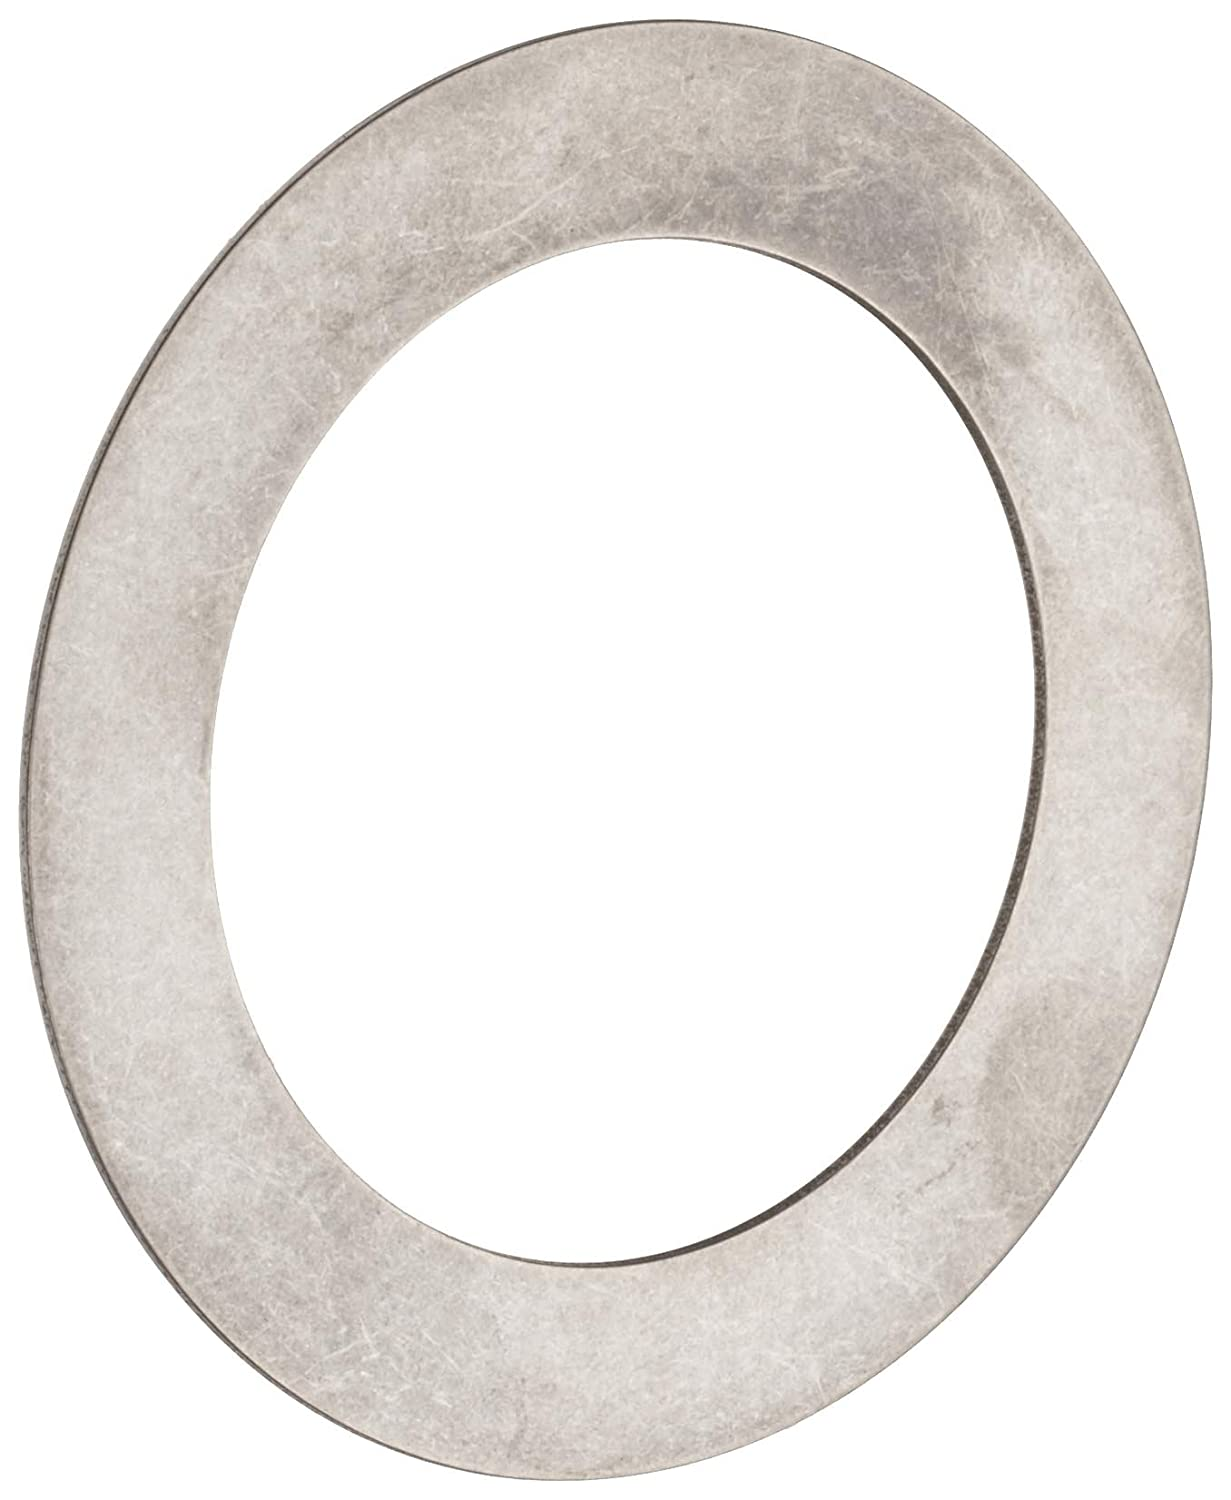 INA AS0821 Thrust Roller Bearing Washer, Metric, 8mm ID, 21mm OD, 1mm Width